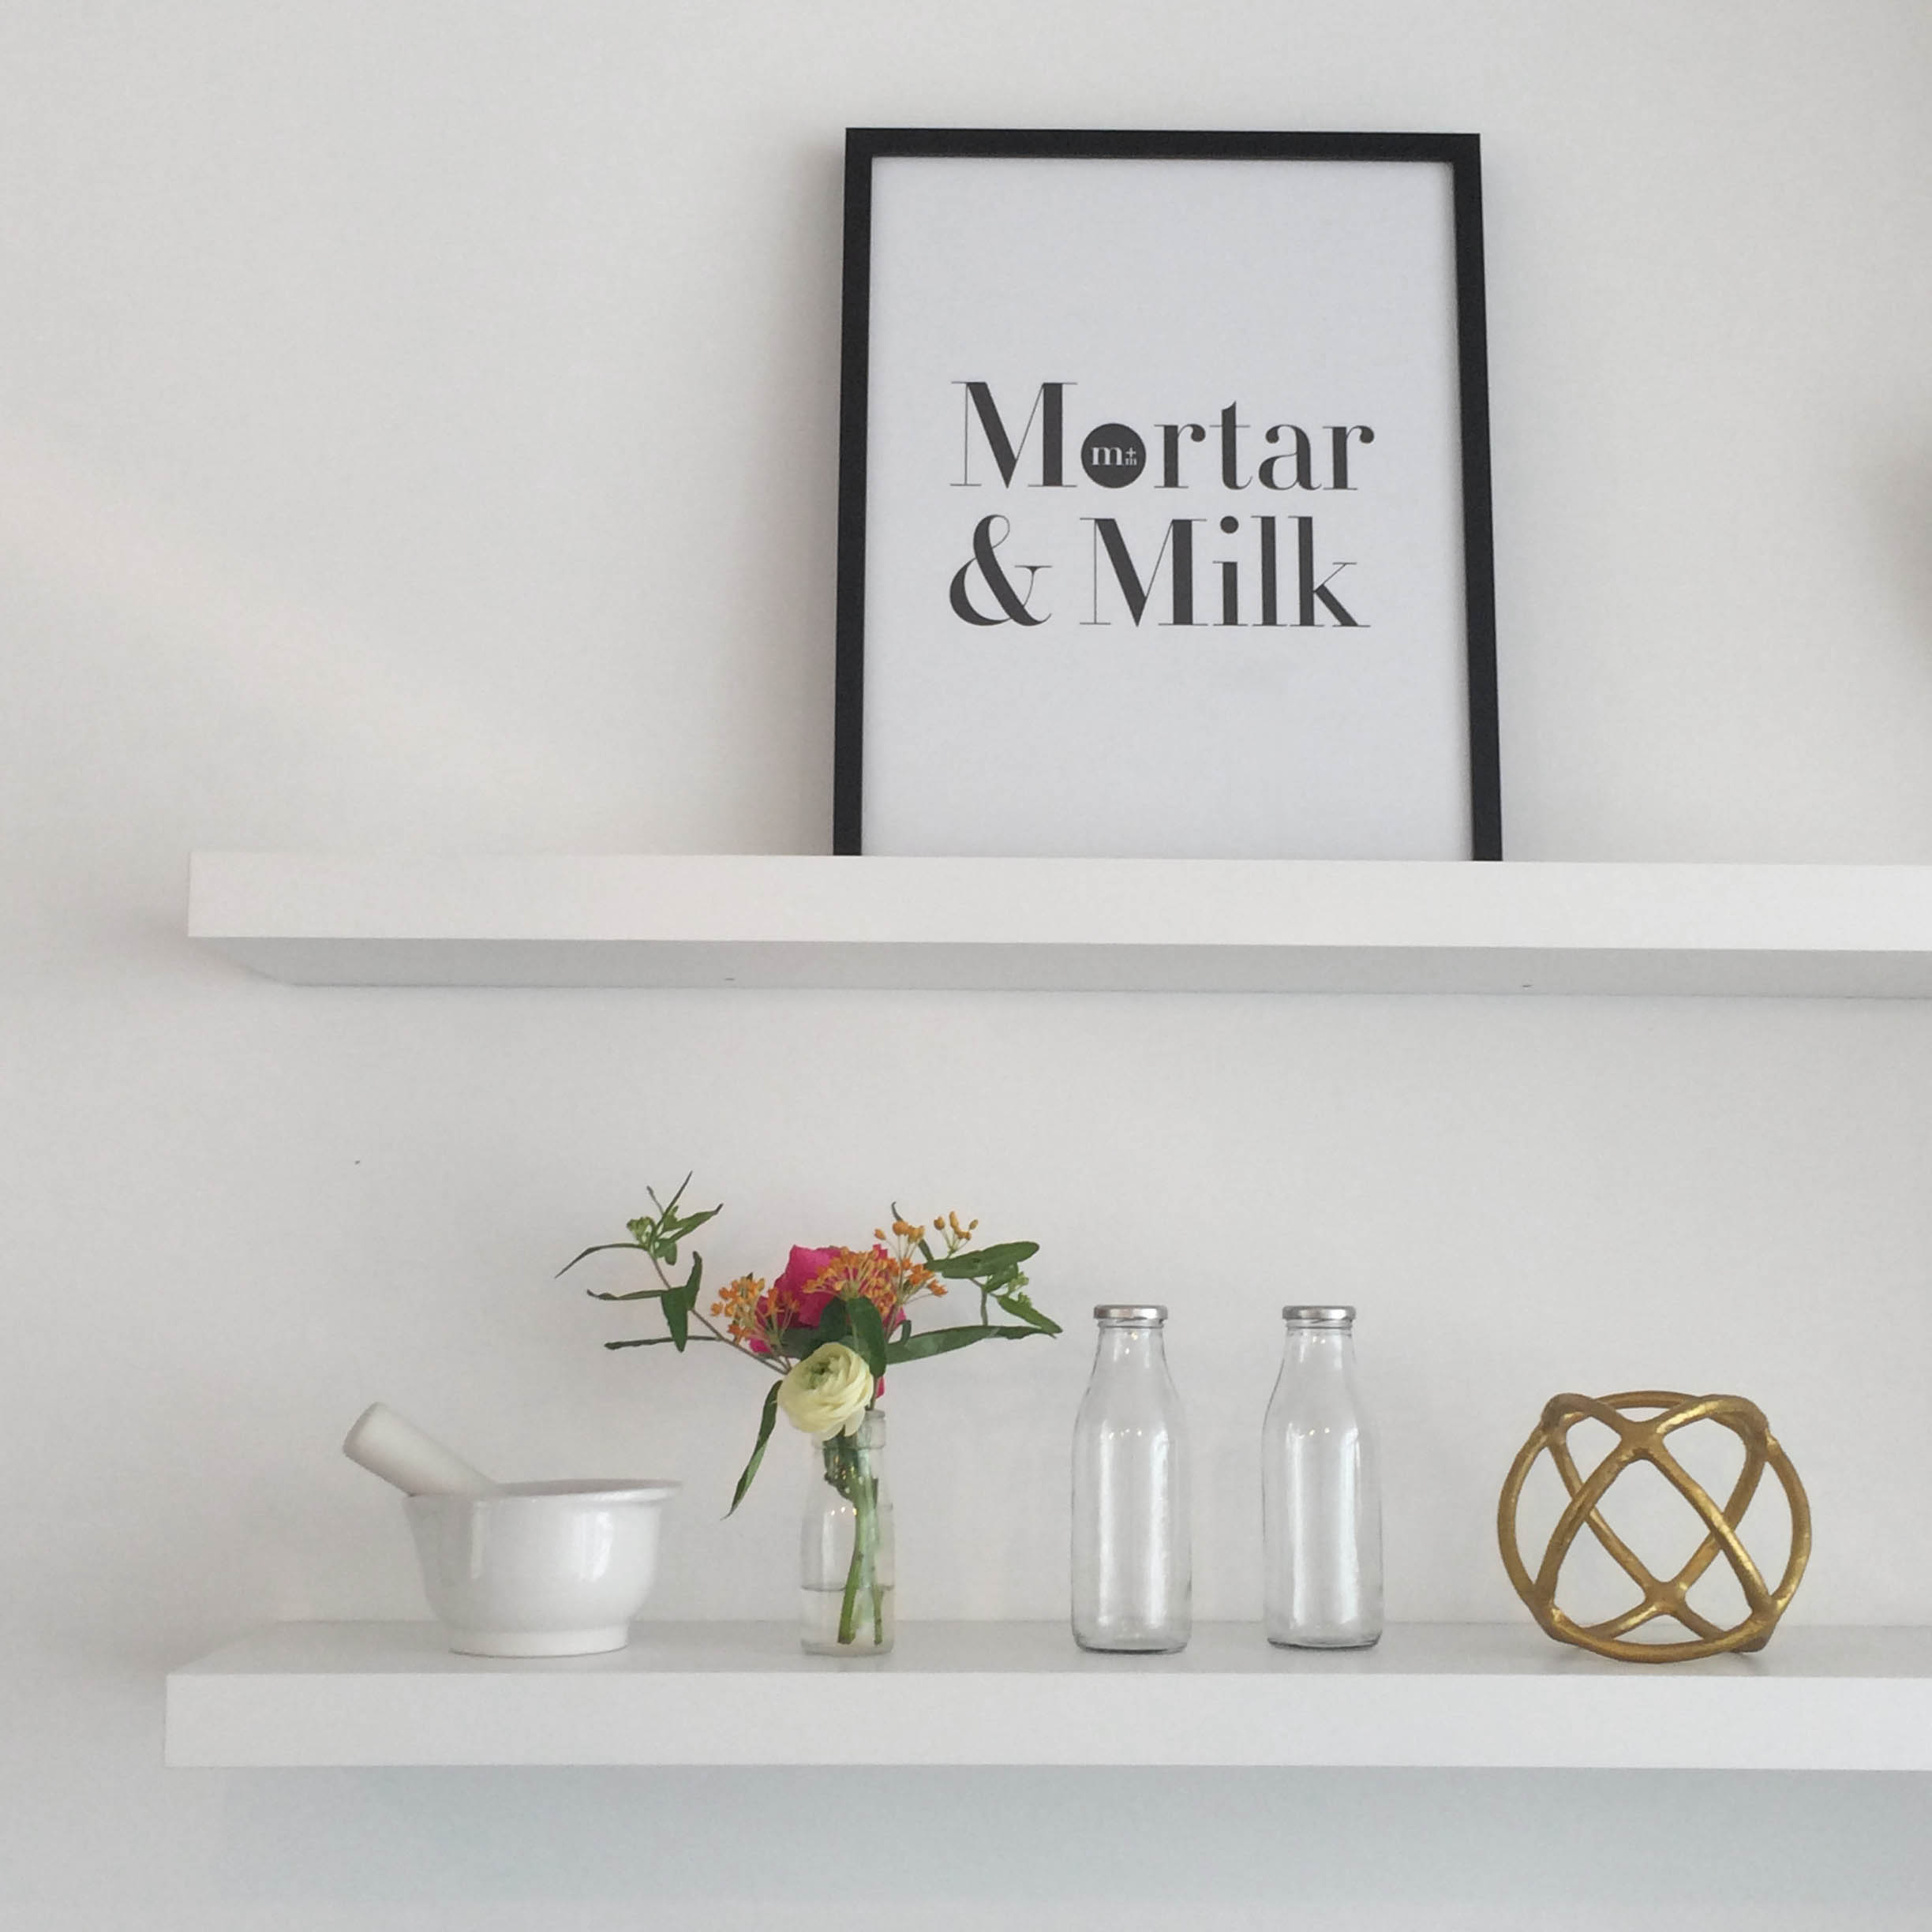 Mortar_Milk_Shelf